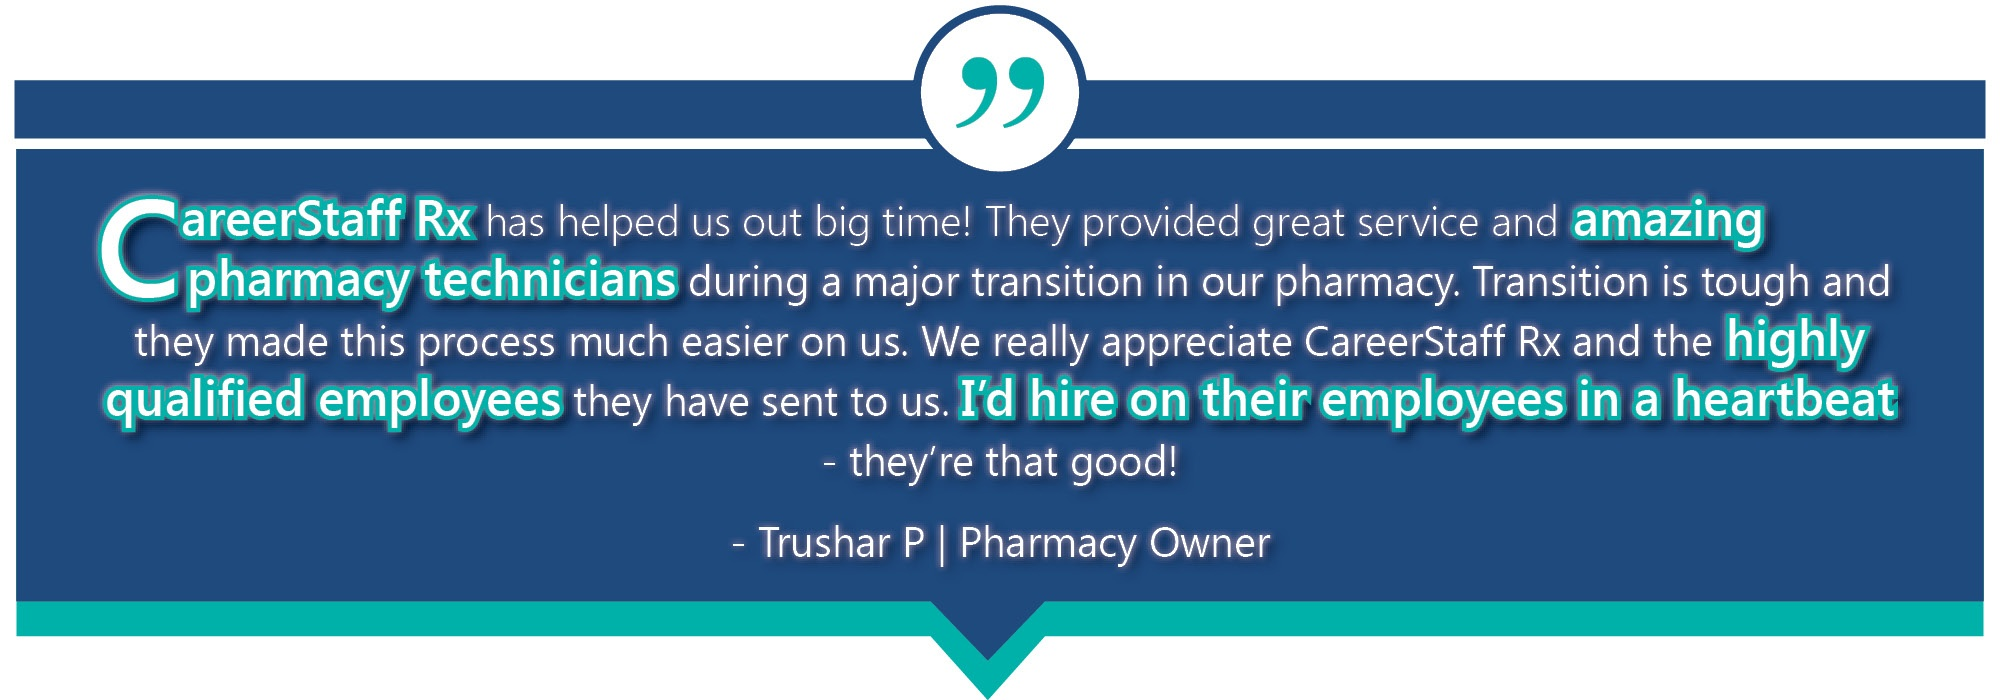 RX Trushar Testimonial Email Template